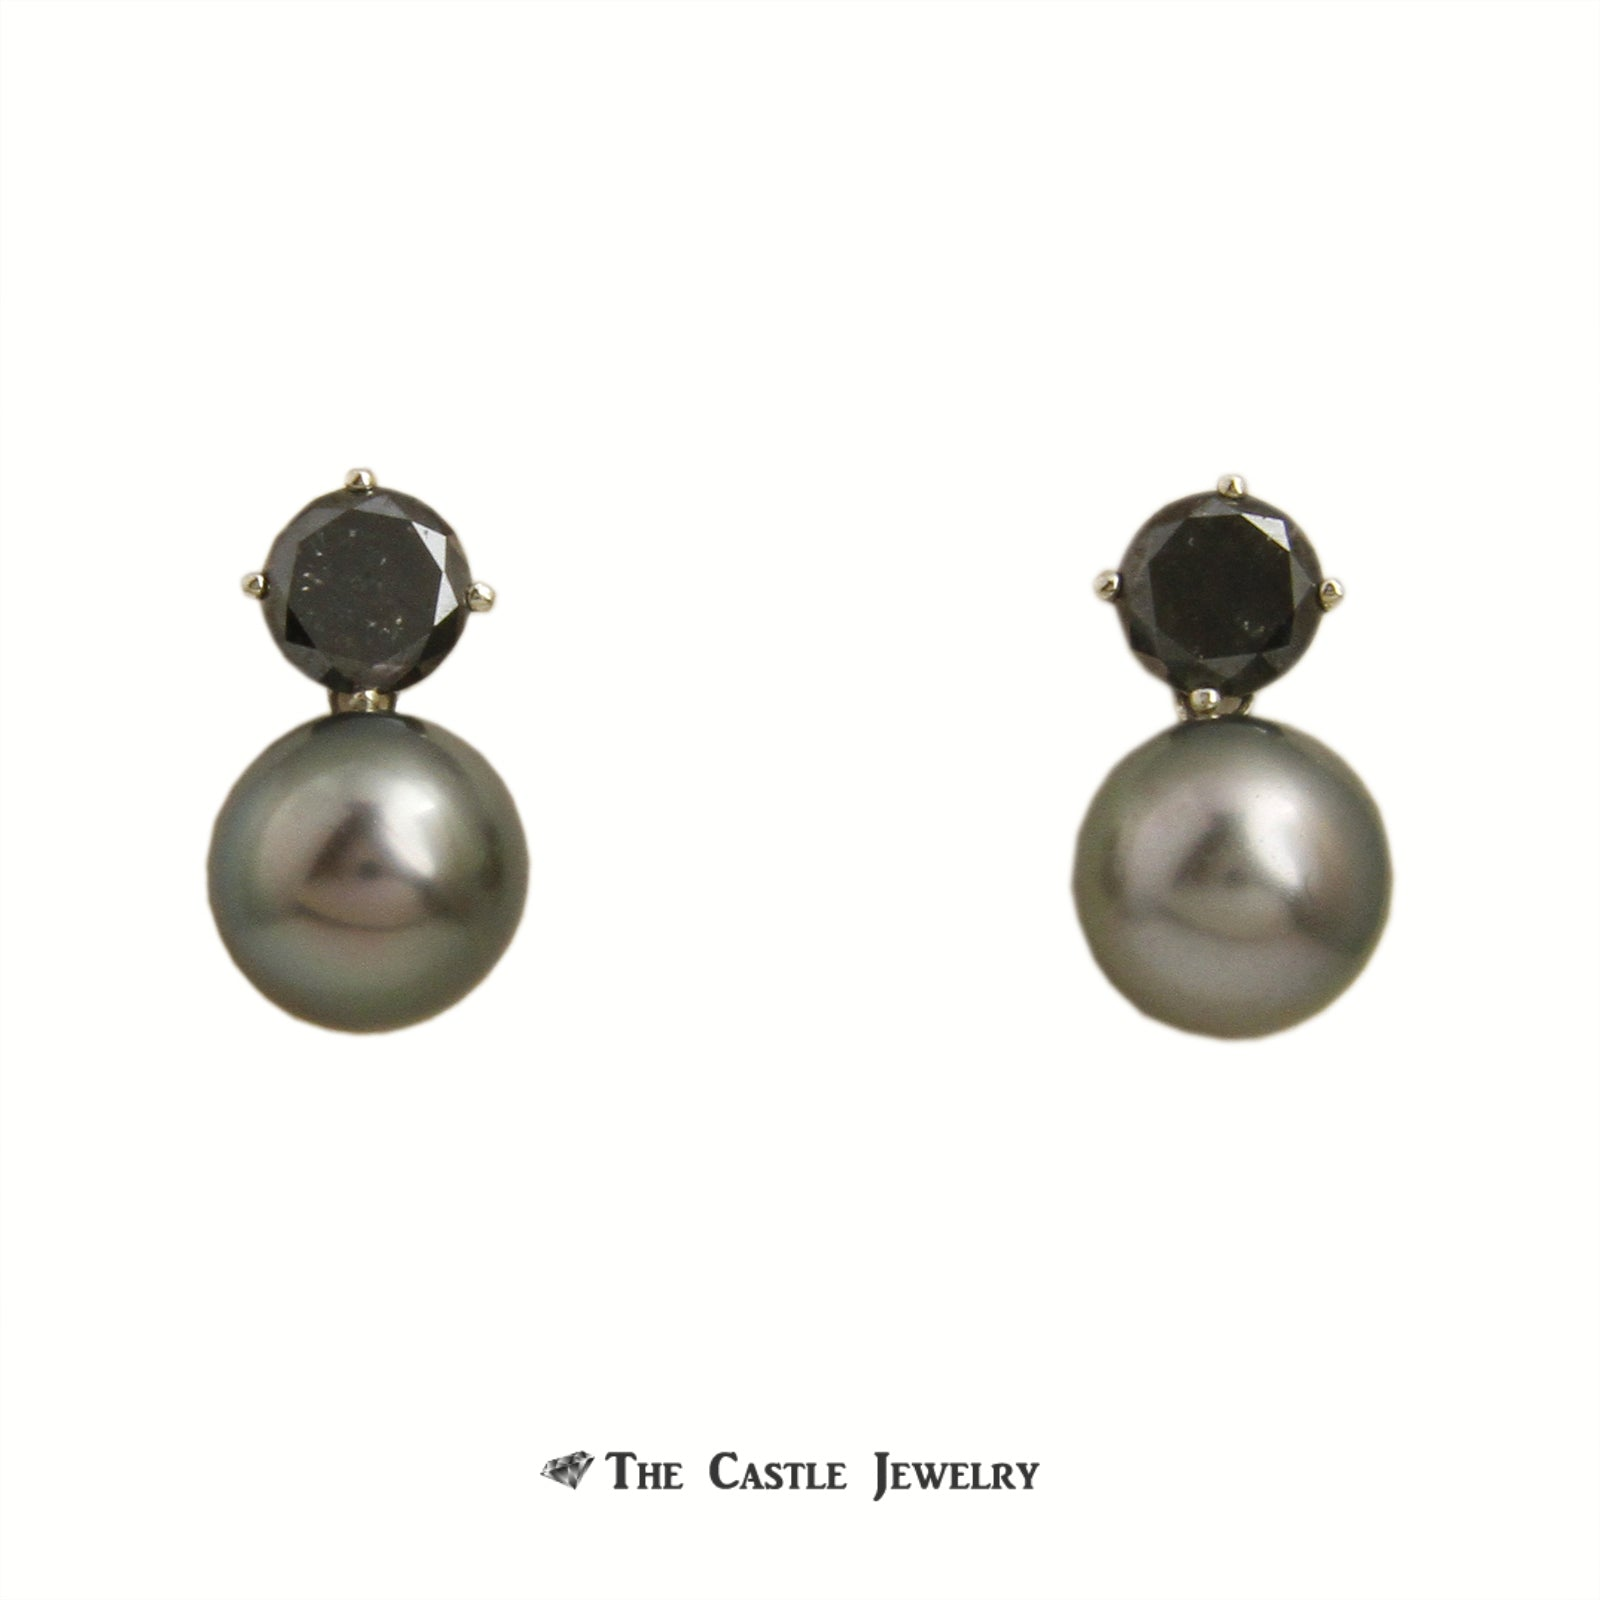 2cttw Black Diamond and Black 9.5mm Pearl Drop Earrings in 14K White Gold